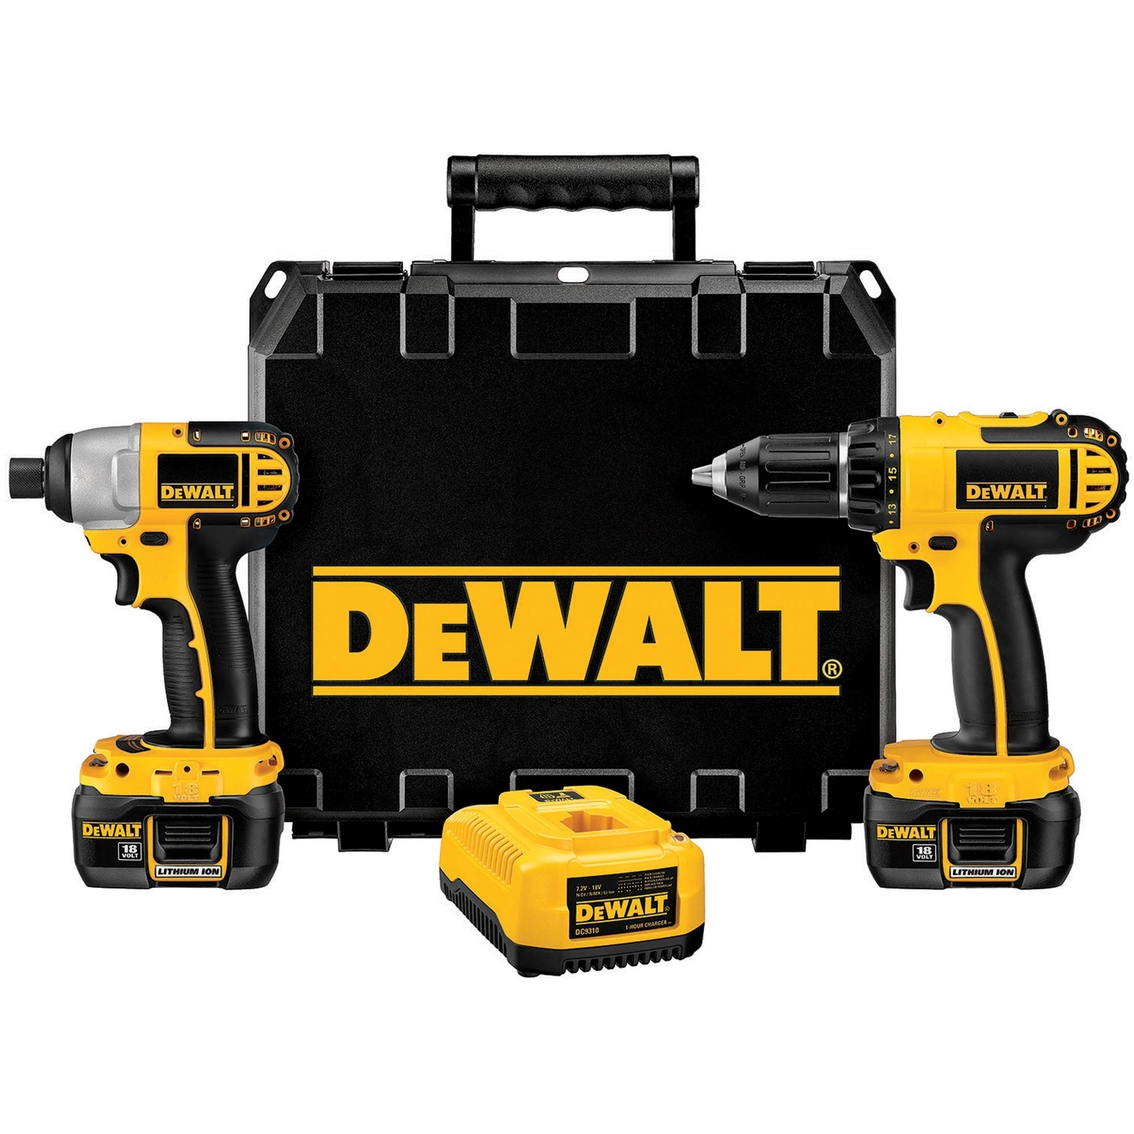 Dewalt 18v Cordless Compact Rechargeable Drill Impact